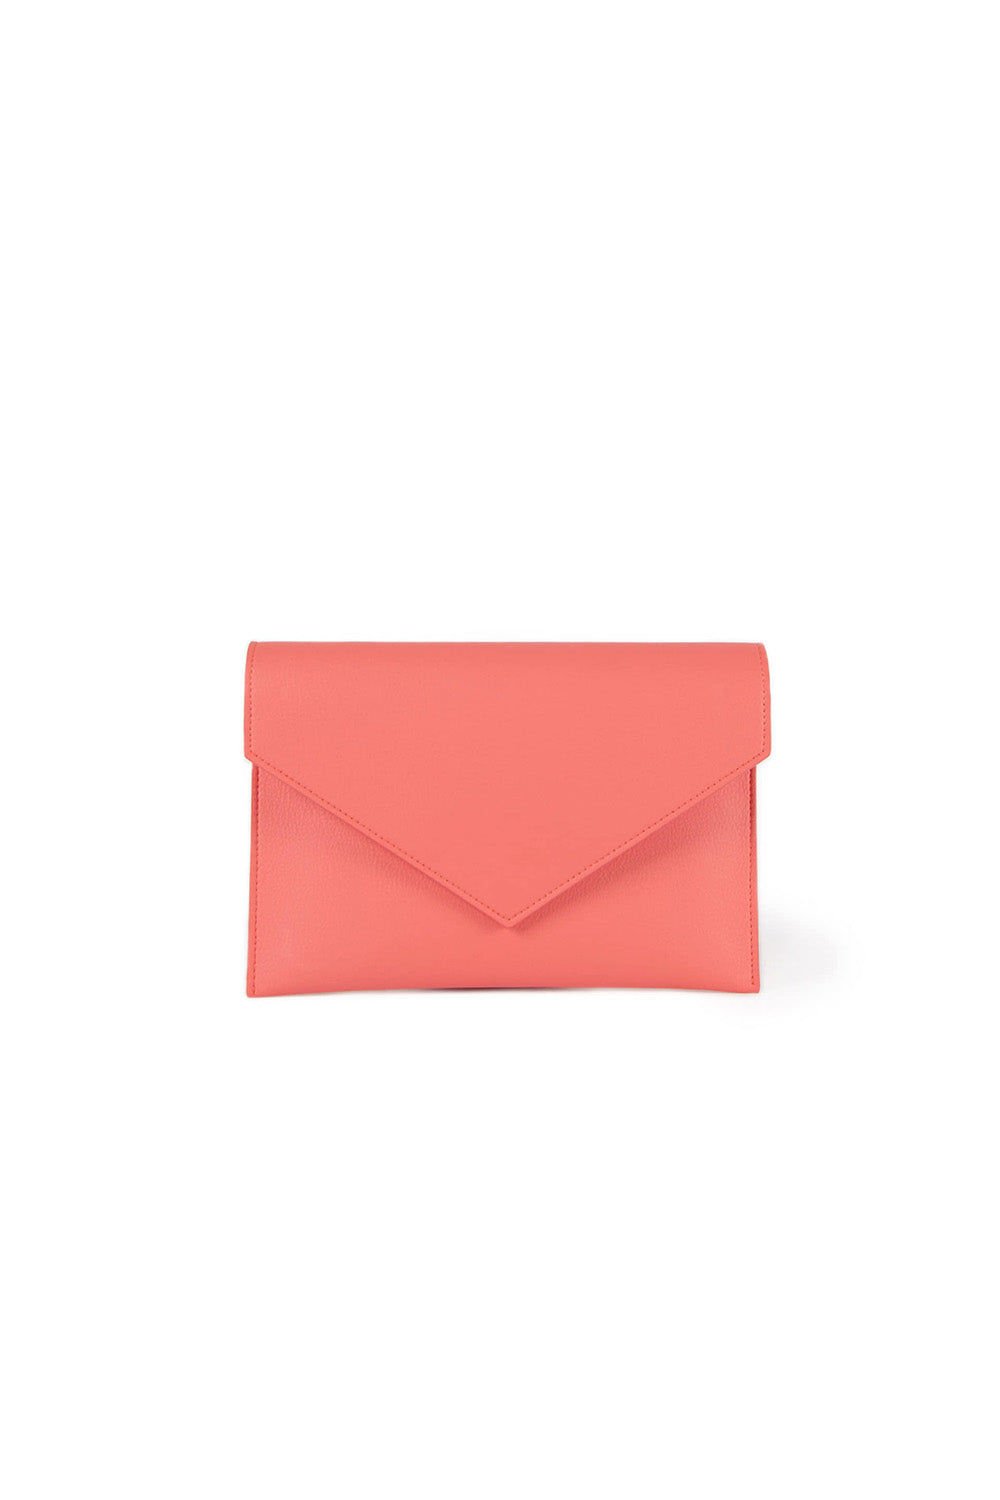 Cosmetic Clutch 42 Coral